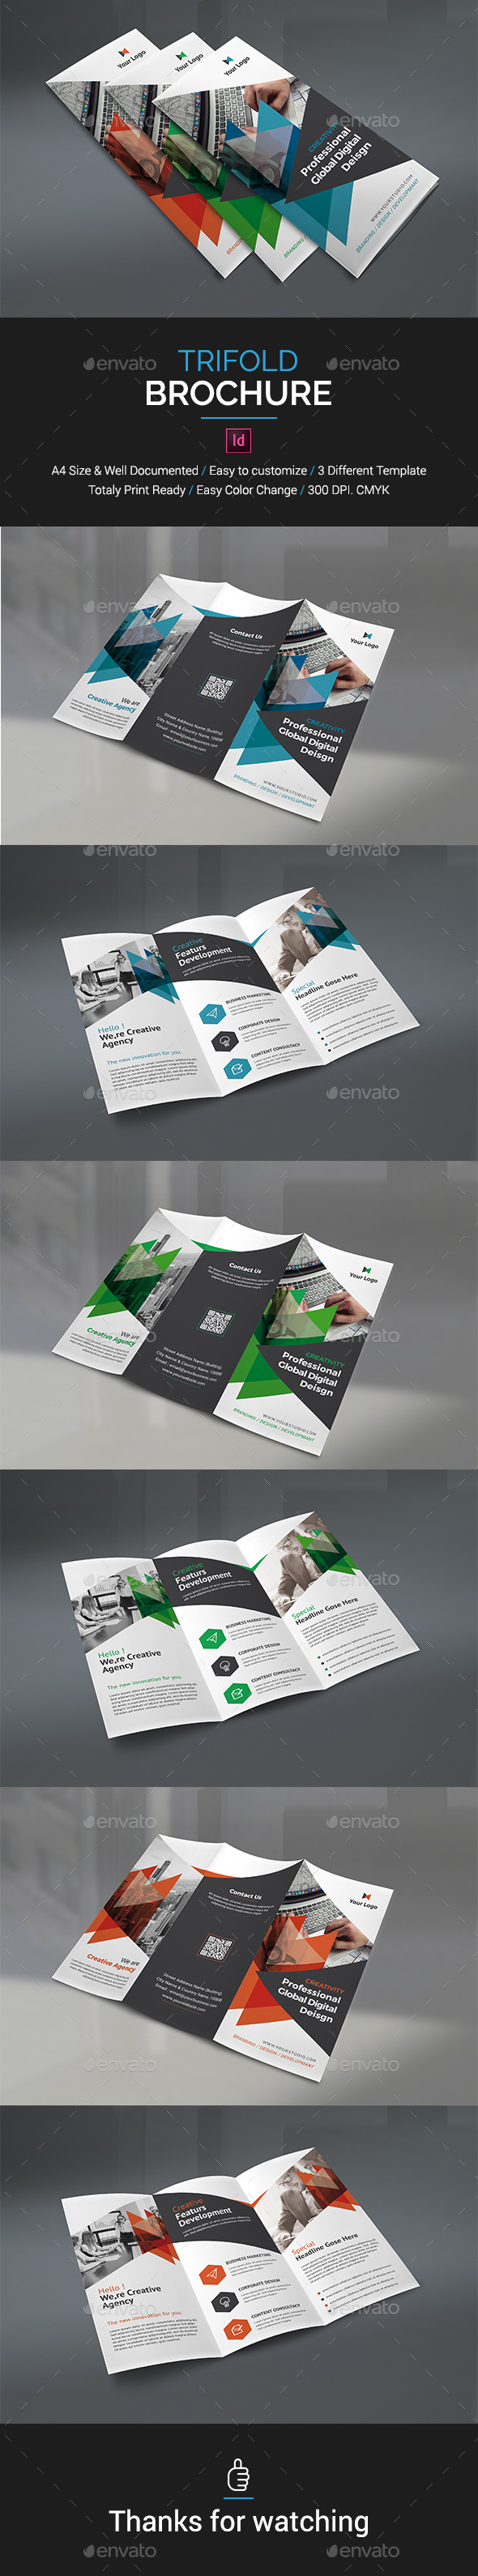 Trifold Brochure Template InDesign INDD | Brochure Templates ...